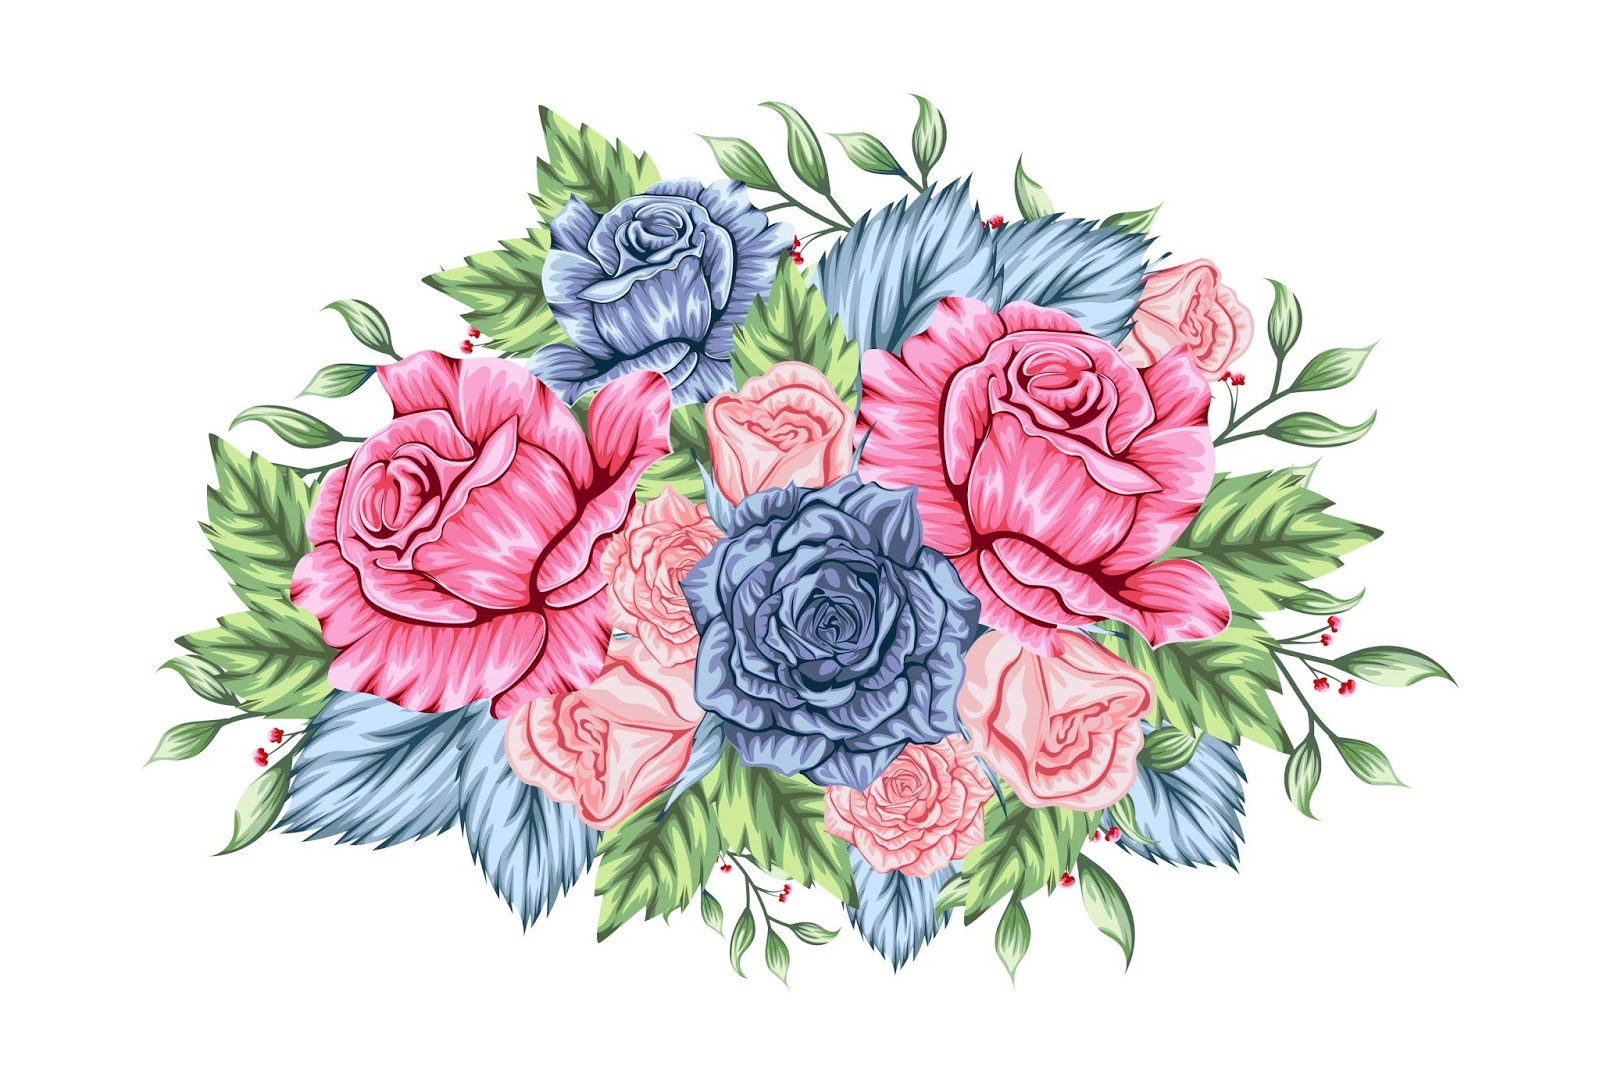 Beautiful Mixed Bouquet Flowers Free Download Vector CDR, AI, EPS and PNG Formats